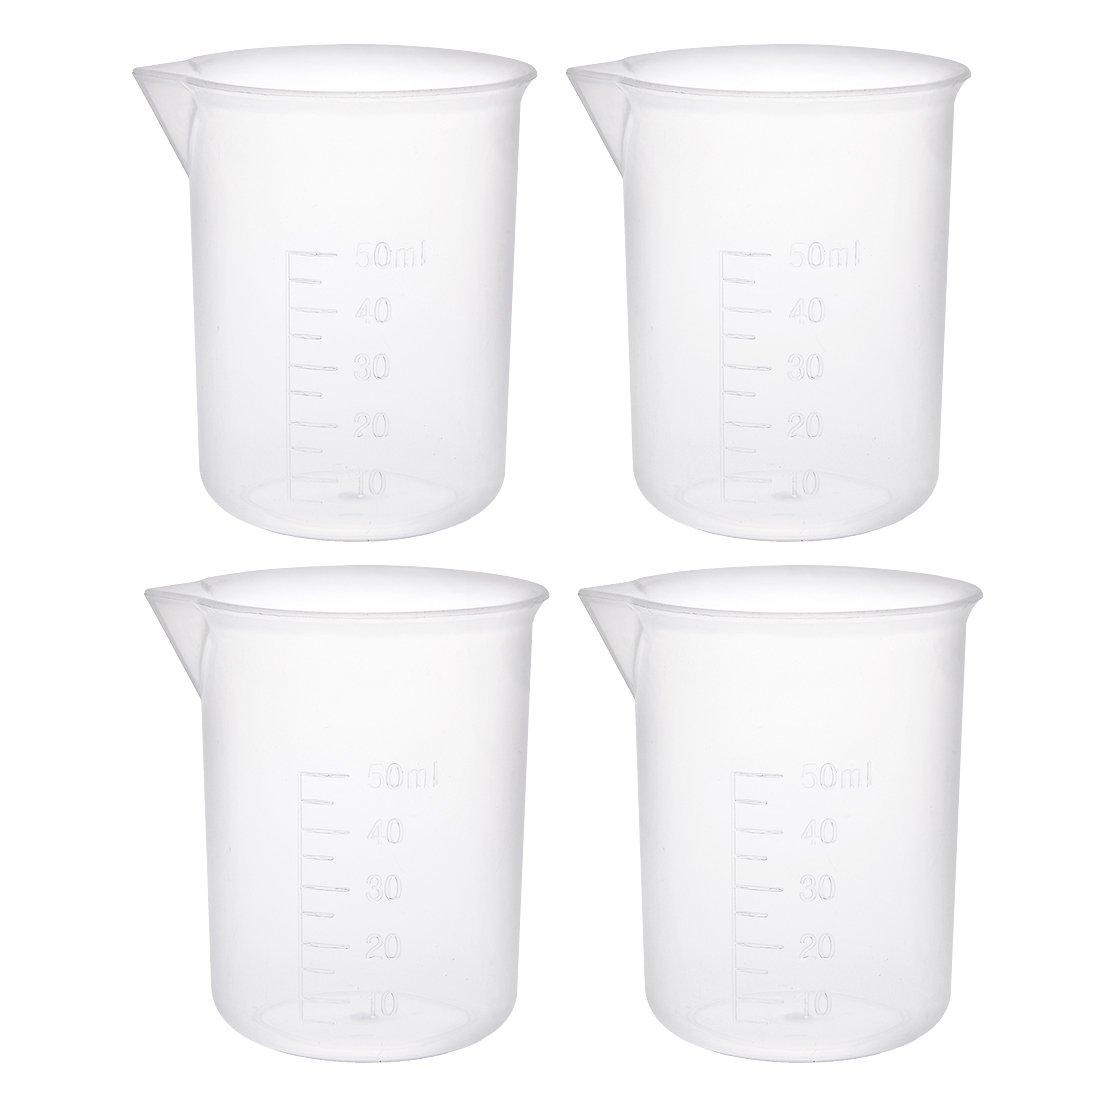 sourcingmap 6pcs Measuring Cup Labs PP Graduated Beakers 150ml a18031400ux0106